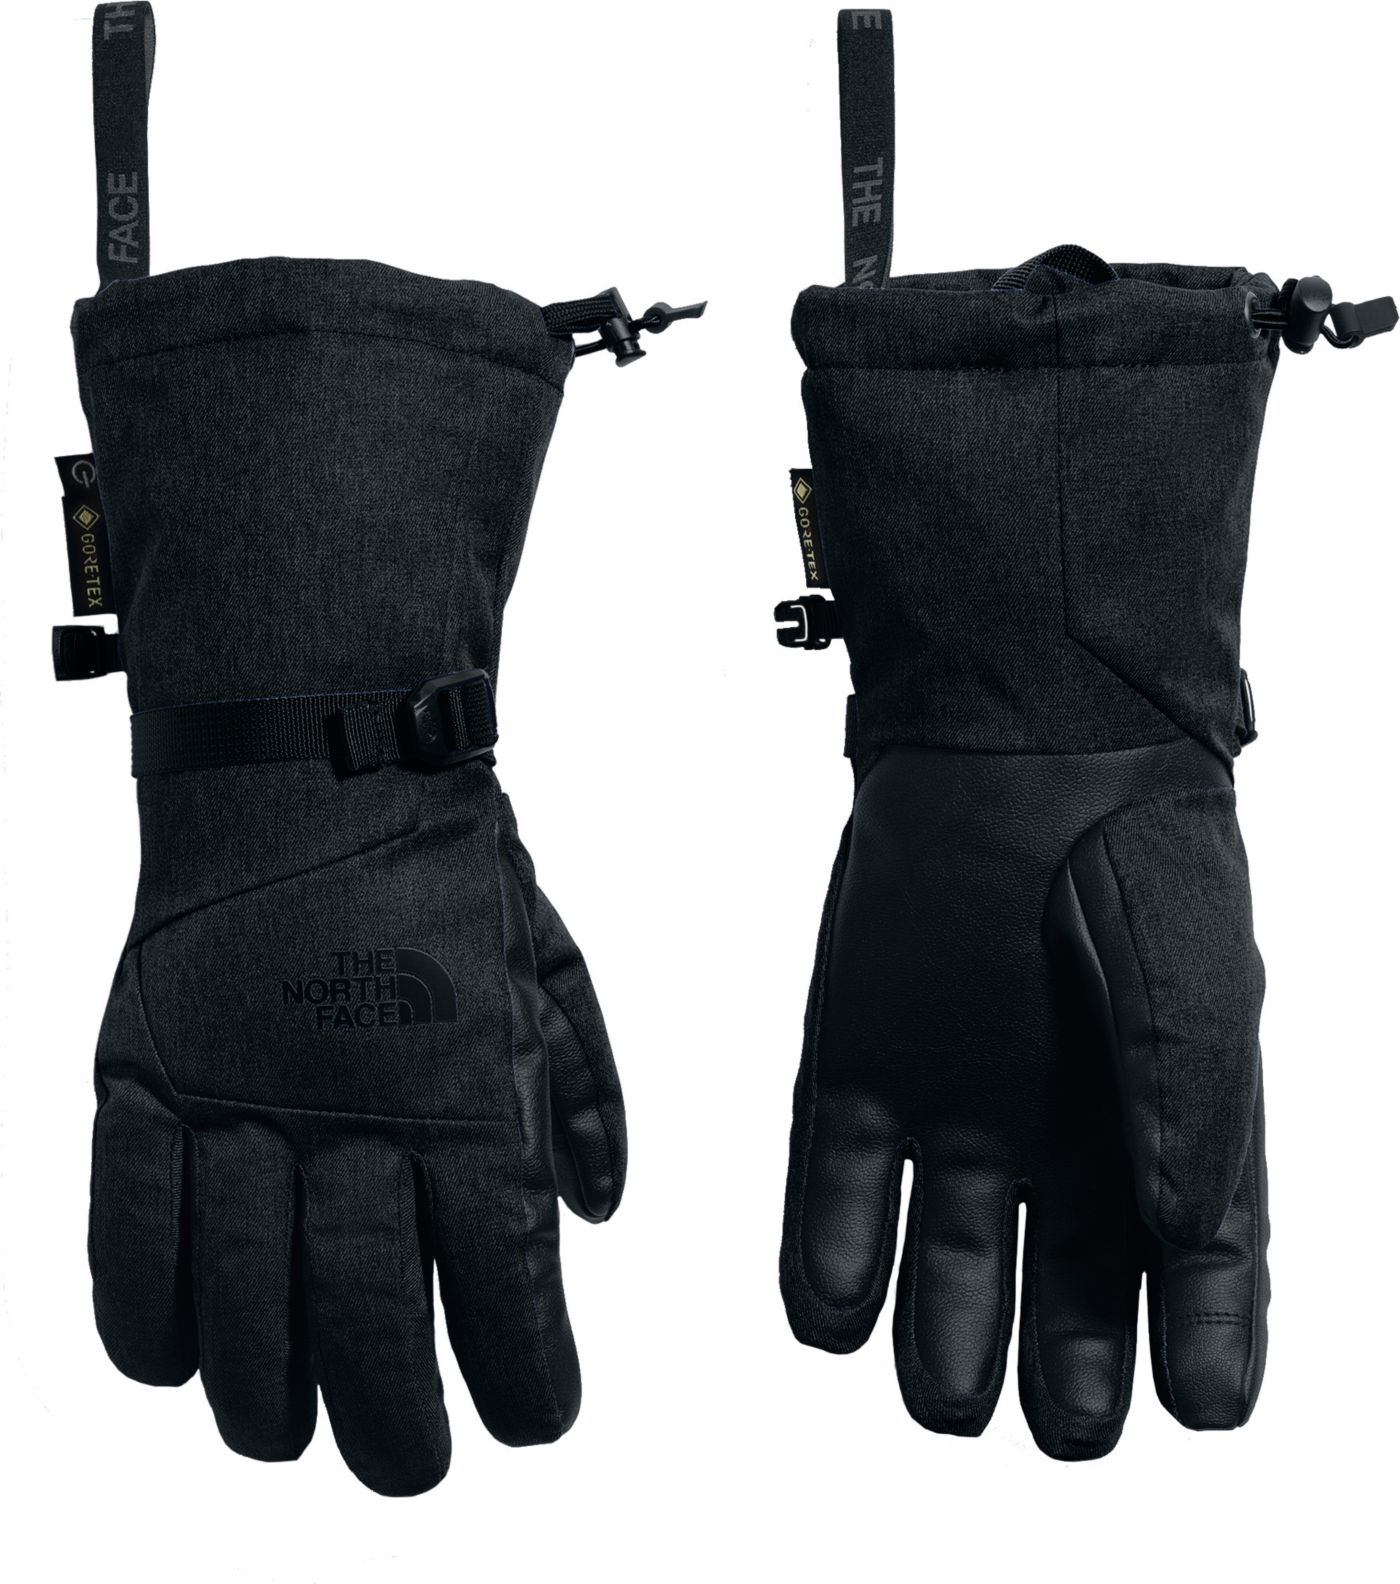 The North Face Women's Montana Etip GORE-TEX Gloves